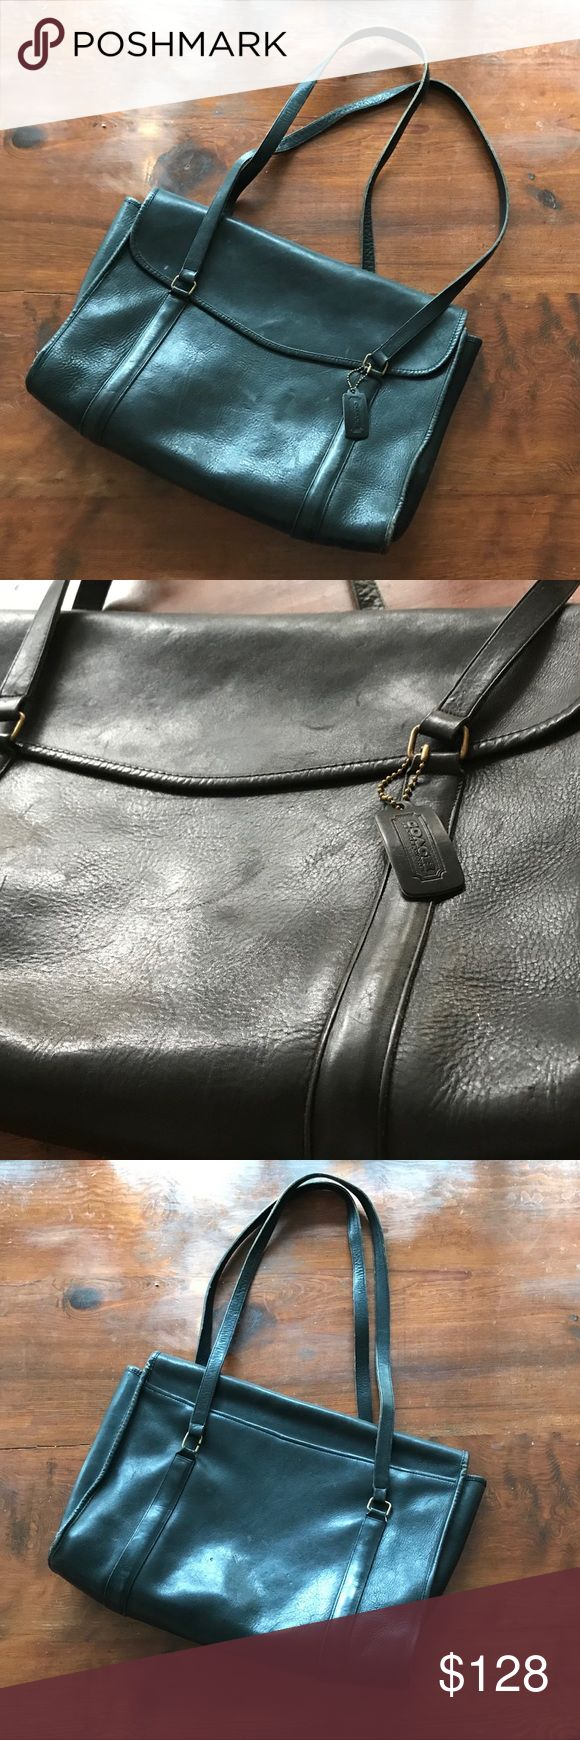 Coach Briefcase Black Leather Authentic Coach briefcase with brass hardware. Coach Bags Laptop Bags